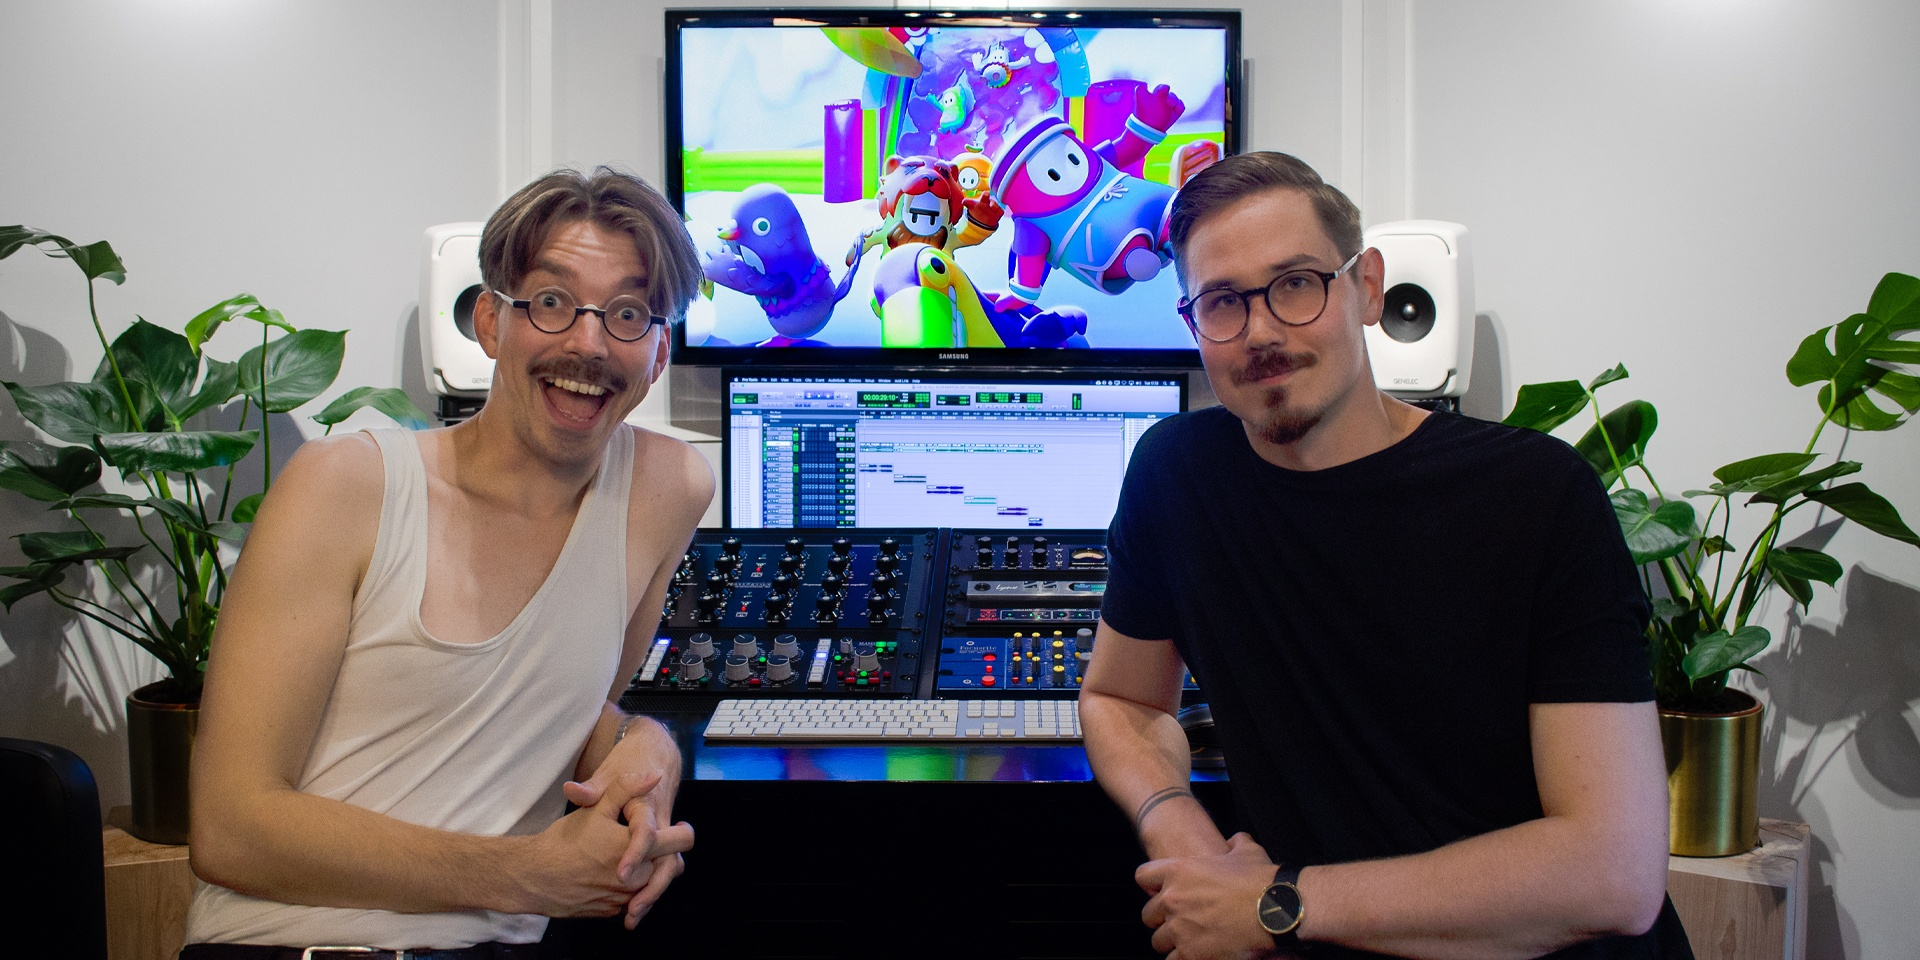 Daniel Hagström and Jukio Kallio talk about the creation of the Fall Guys soundtrack